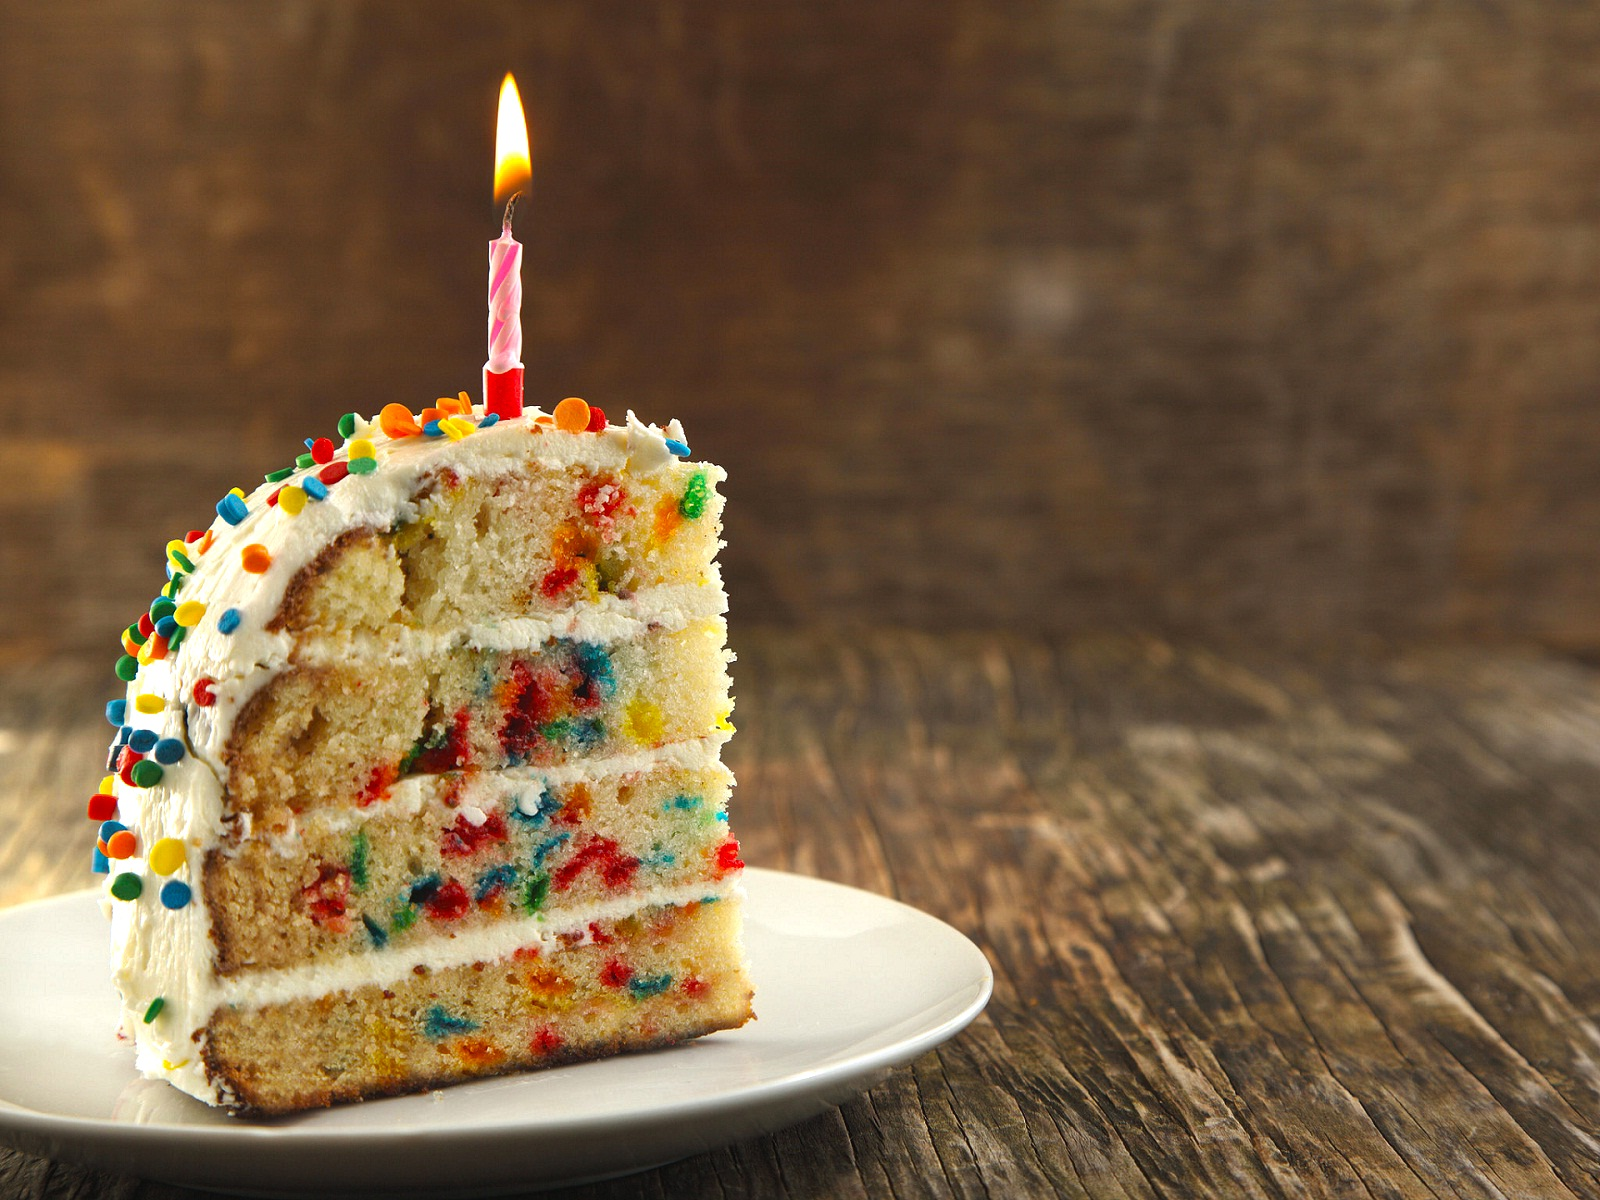 birthday cake images hd happy birthday cake hd wallpaper cookifi 1762